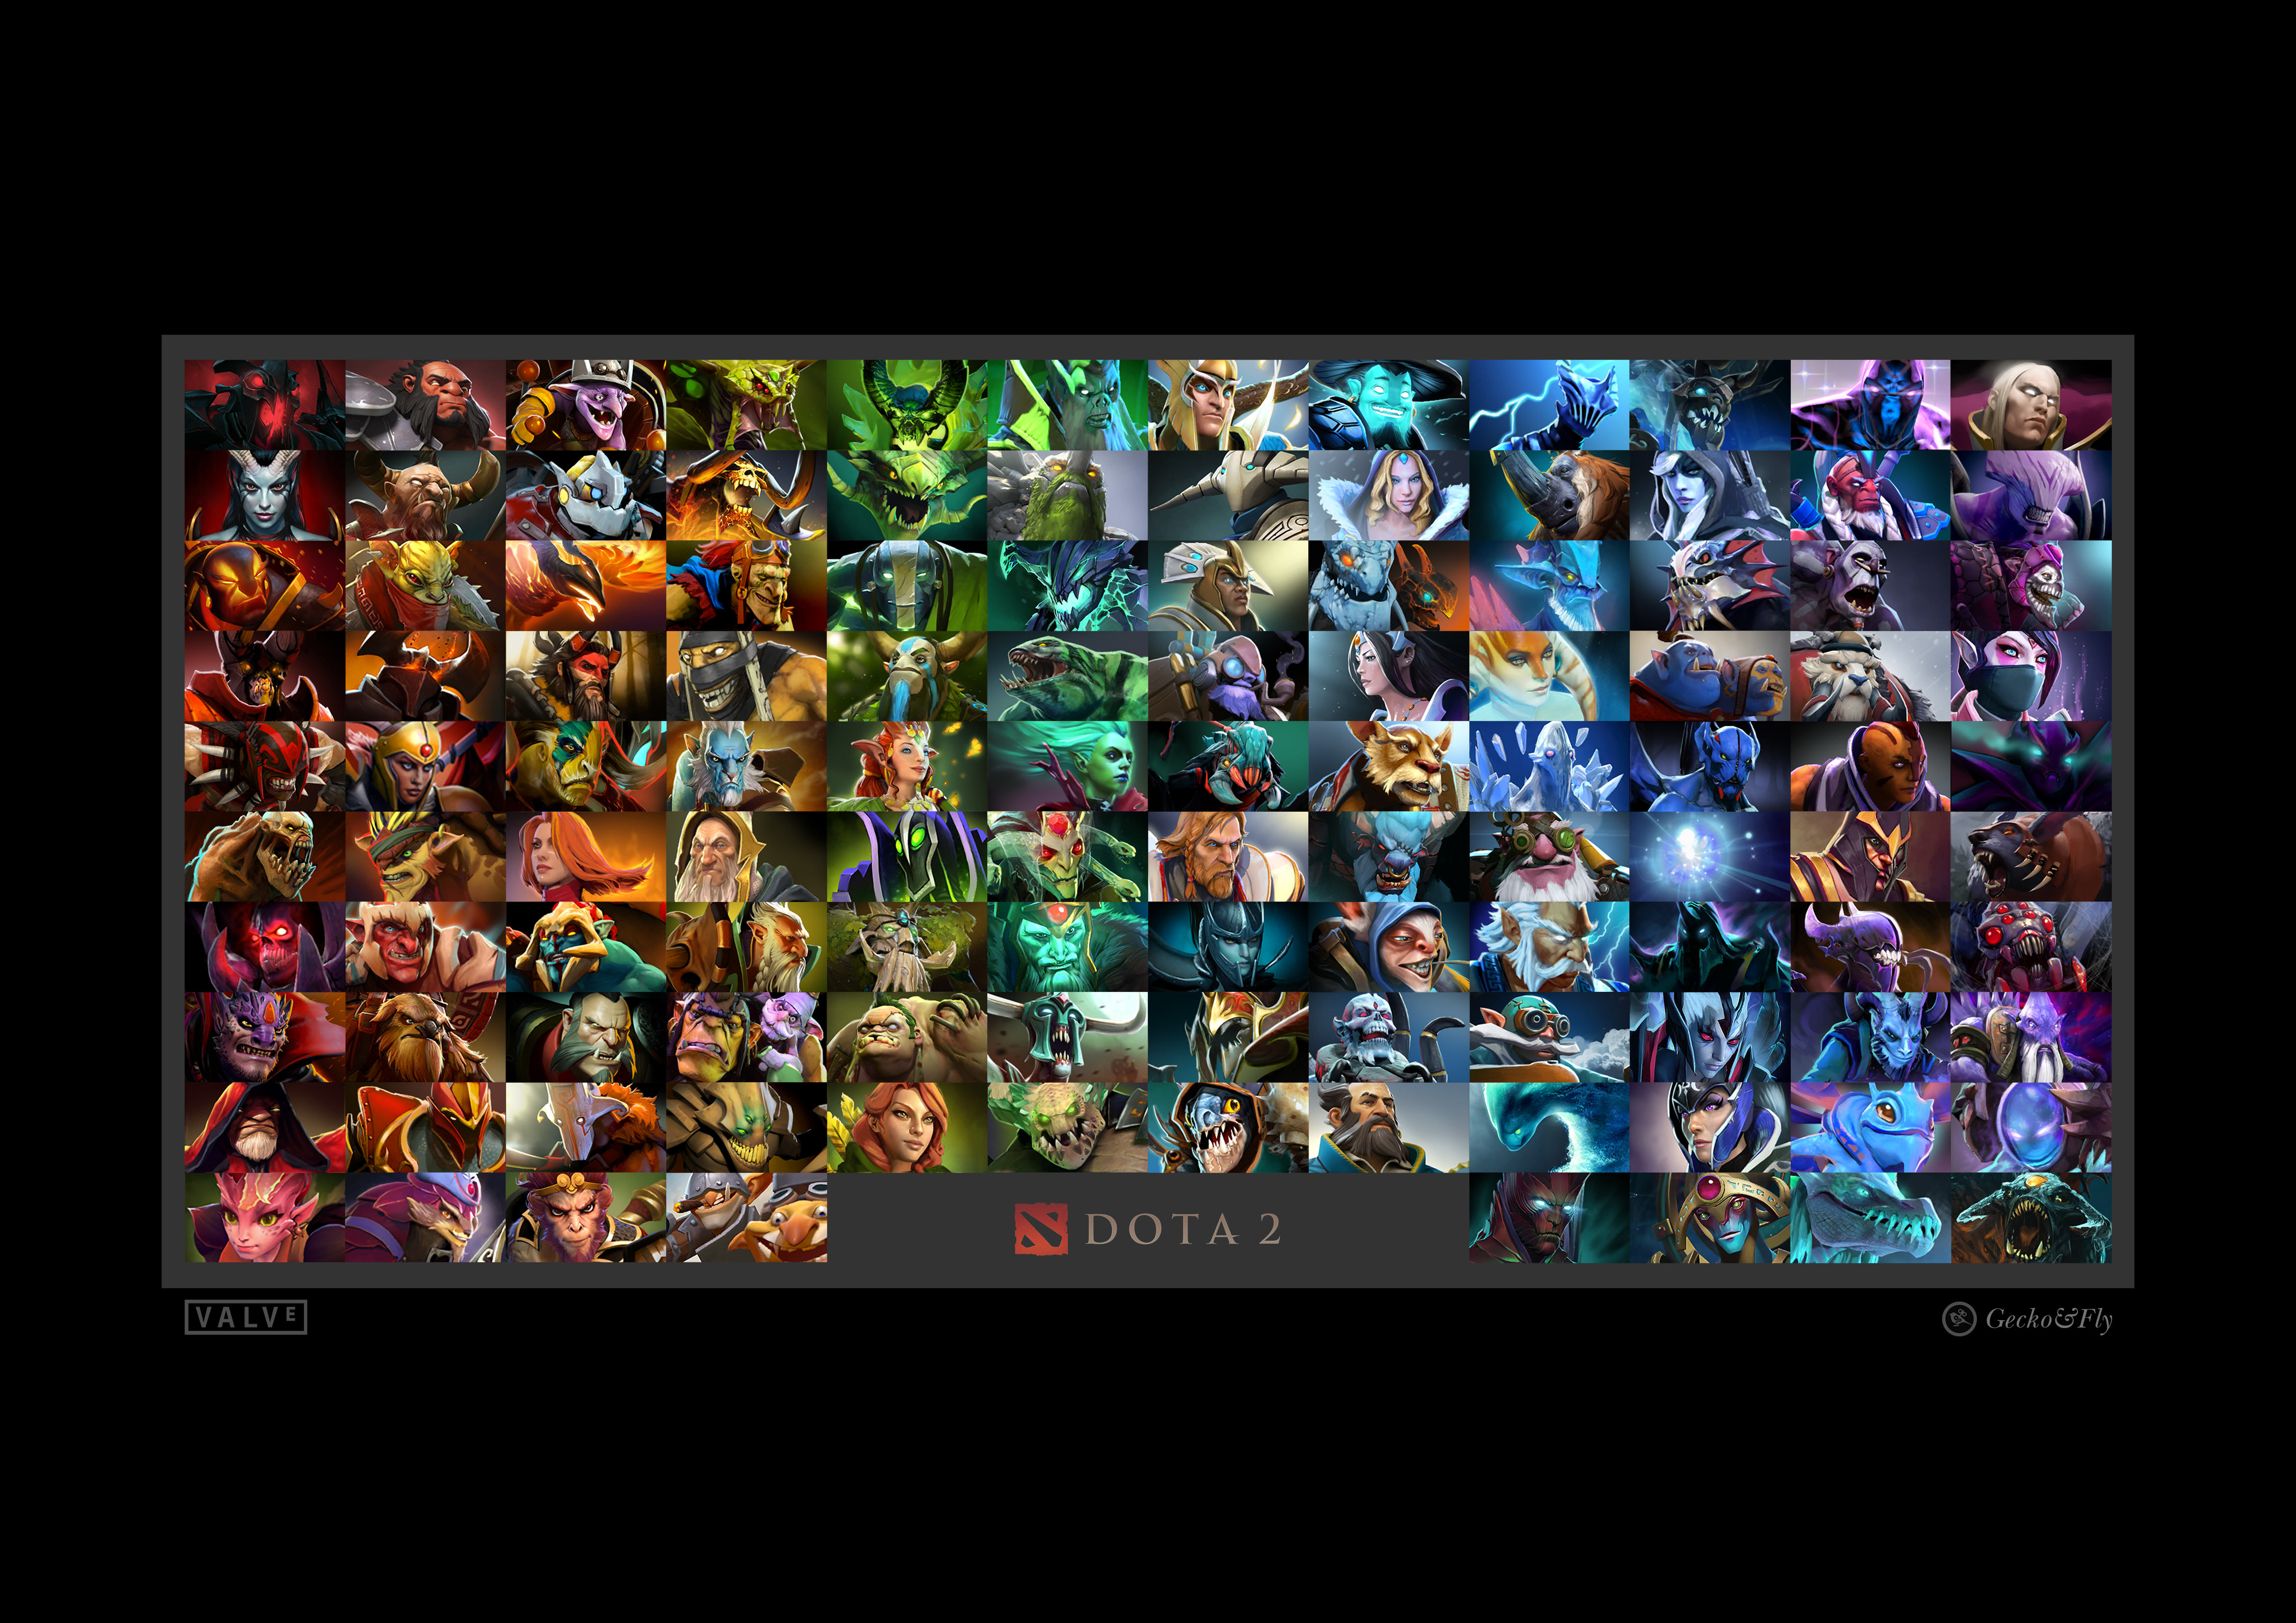 dota 2 how to download a replay